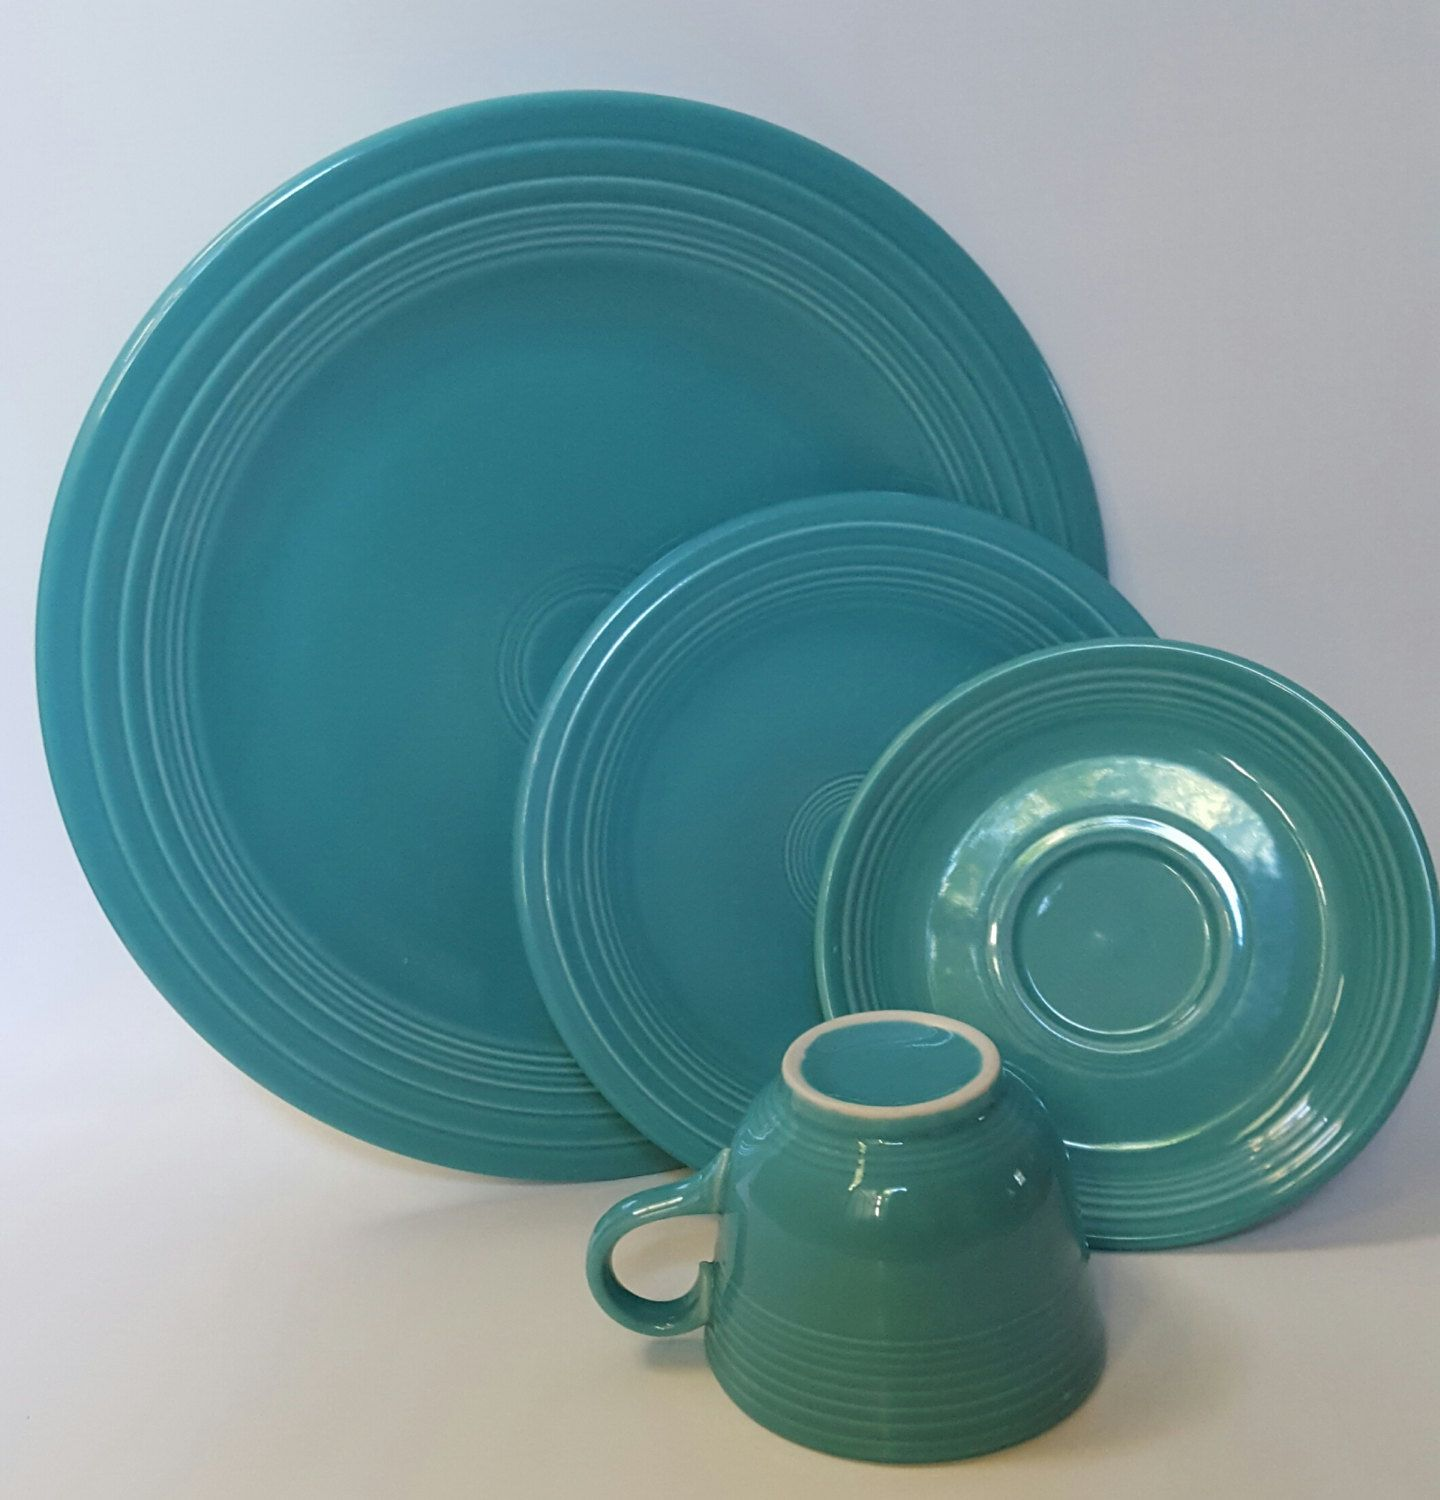 Vintage Fiesta Place Setting Turquoise Fiestaware Dinner Set Homer Laughlin Dinnerware 4 Piece Set by VtgTreasureTroves on Etsy & Vintage Fiesta 4pc Place Setting Turquoise Fiestaware Dinner Set ...